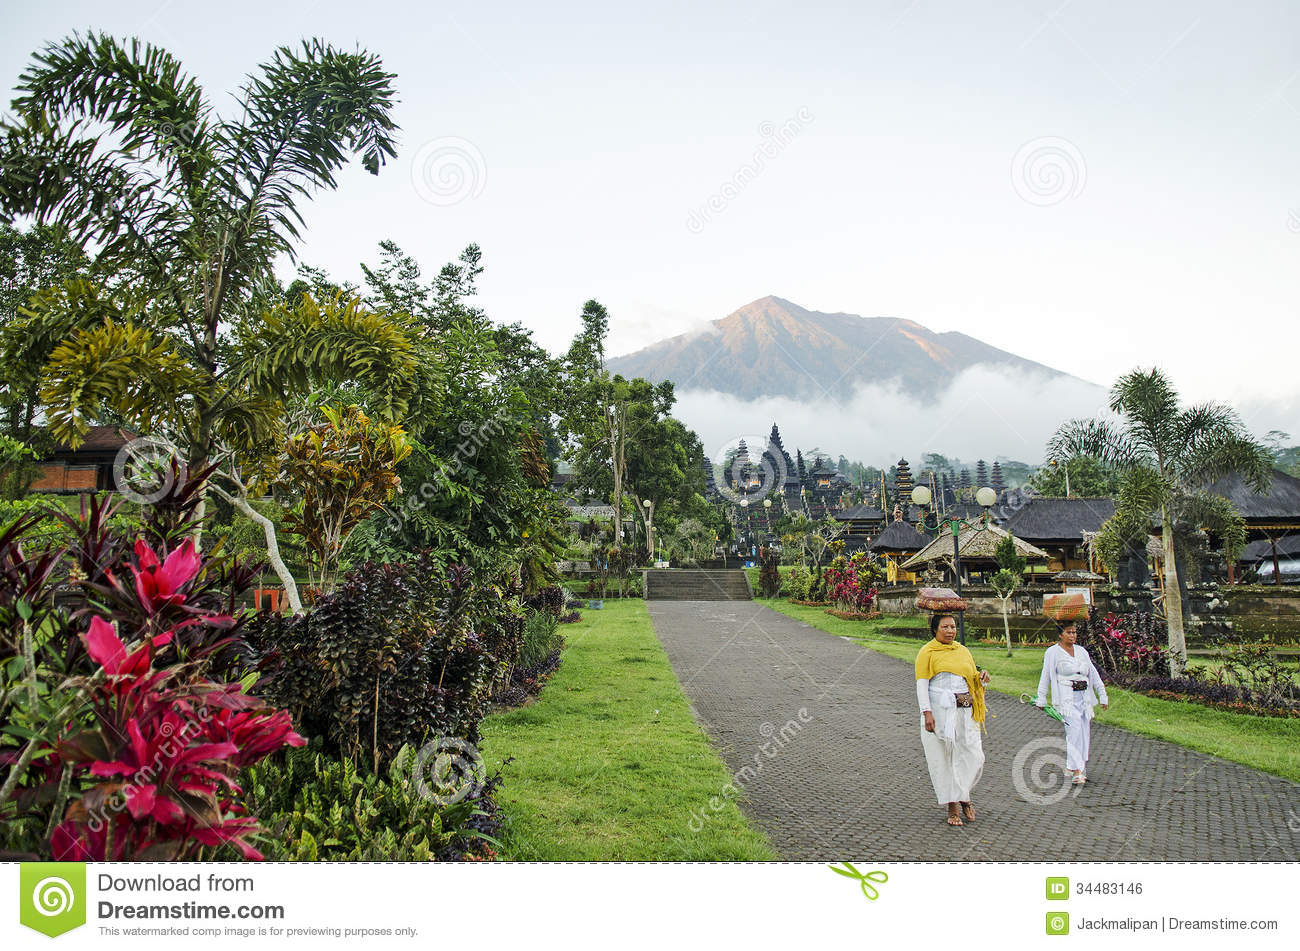 Mount Agung clipart #13, Download drawings